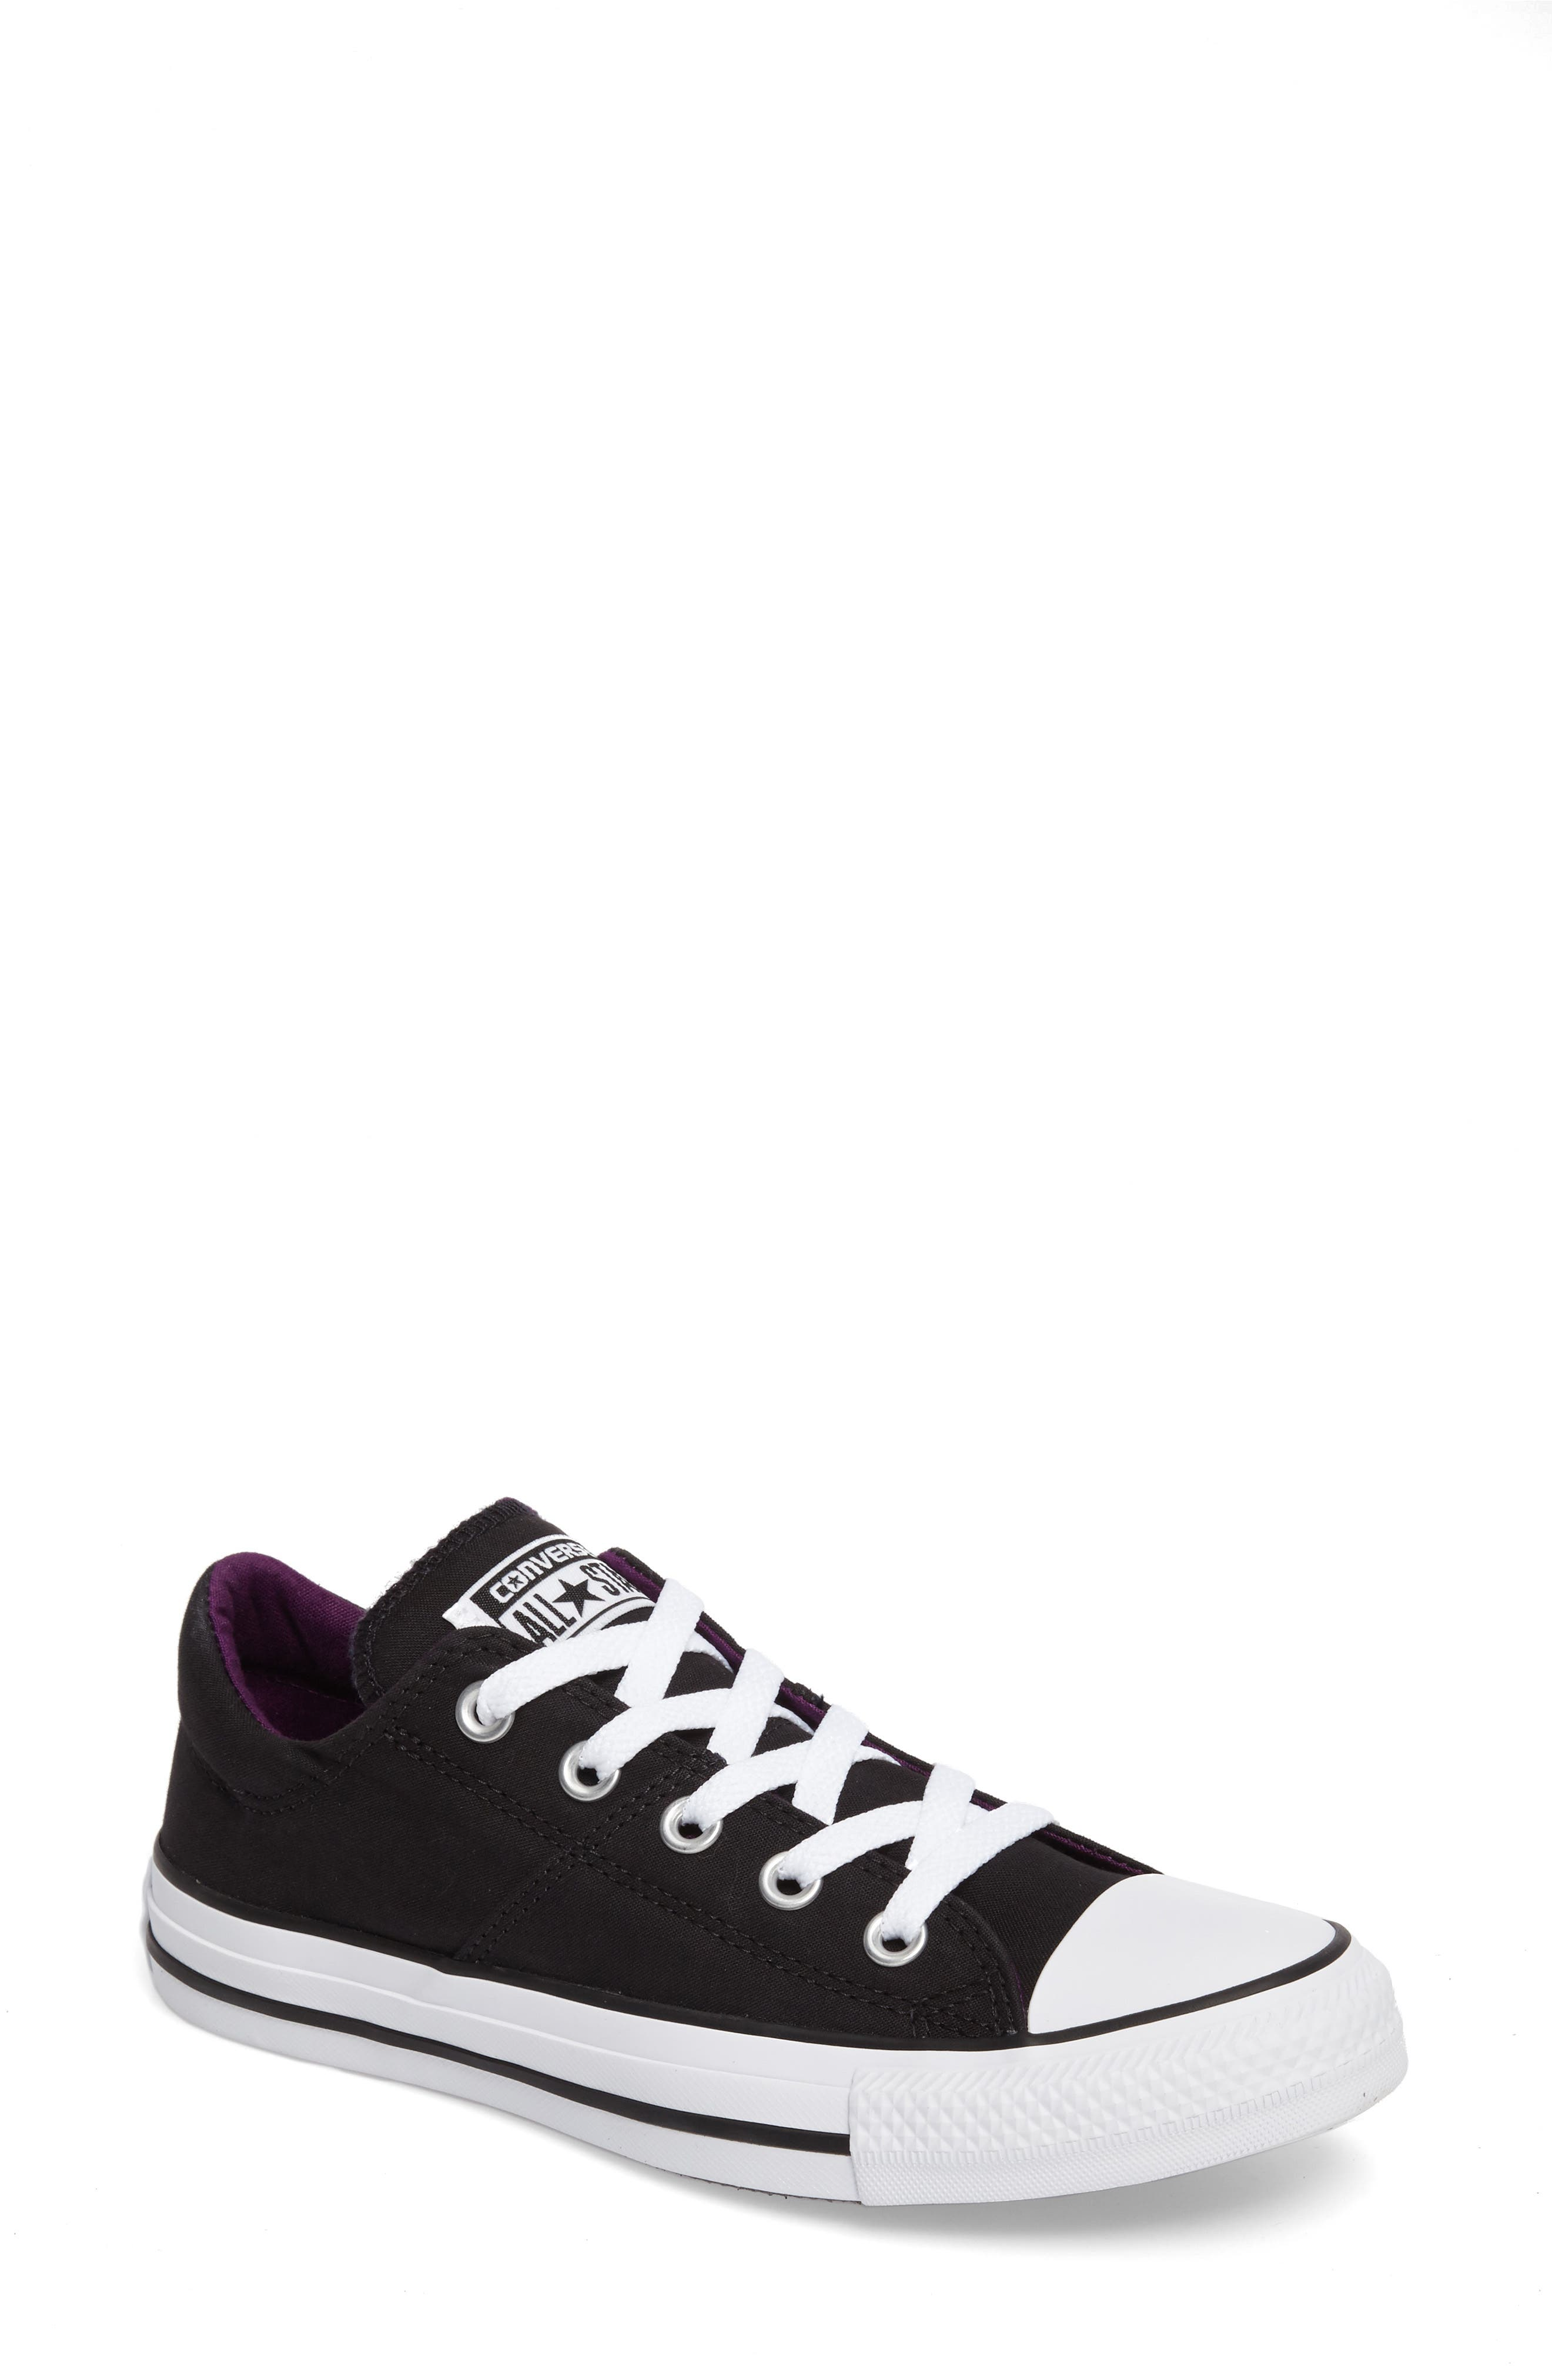 Chuck Taylor<sup>®</sup> All Star<sup>®</sup> Madison Low Top Sneaker,                             Main thumbnail 1, color,                             002